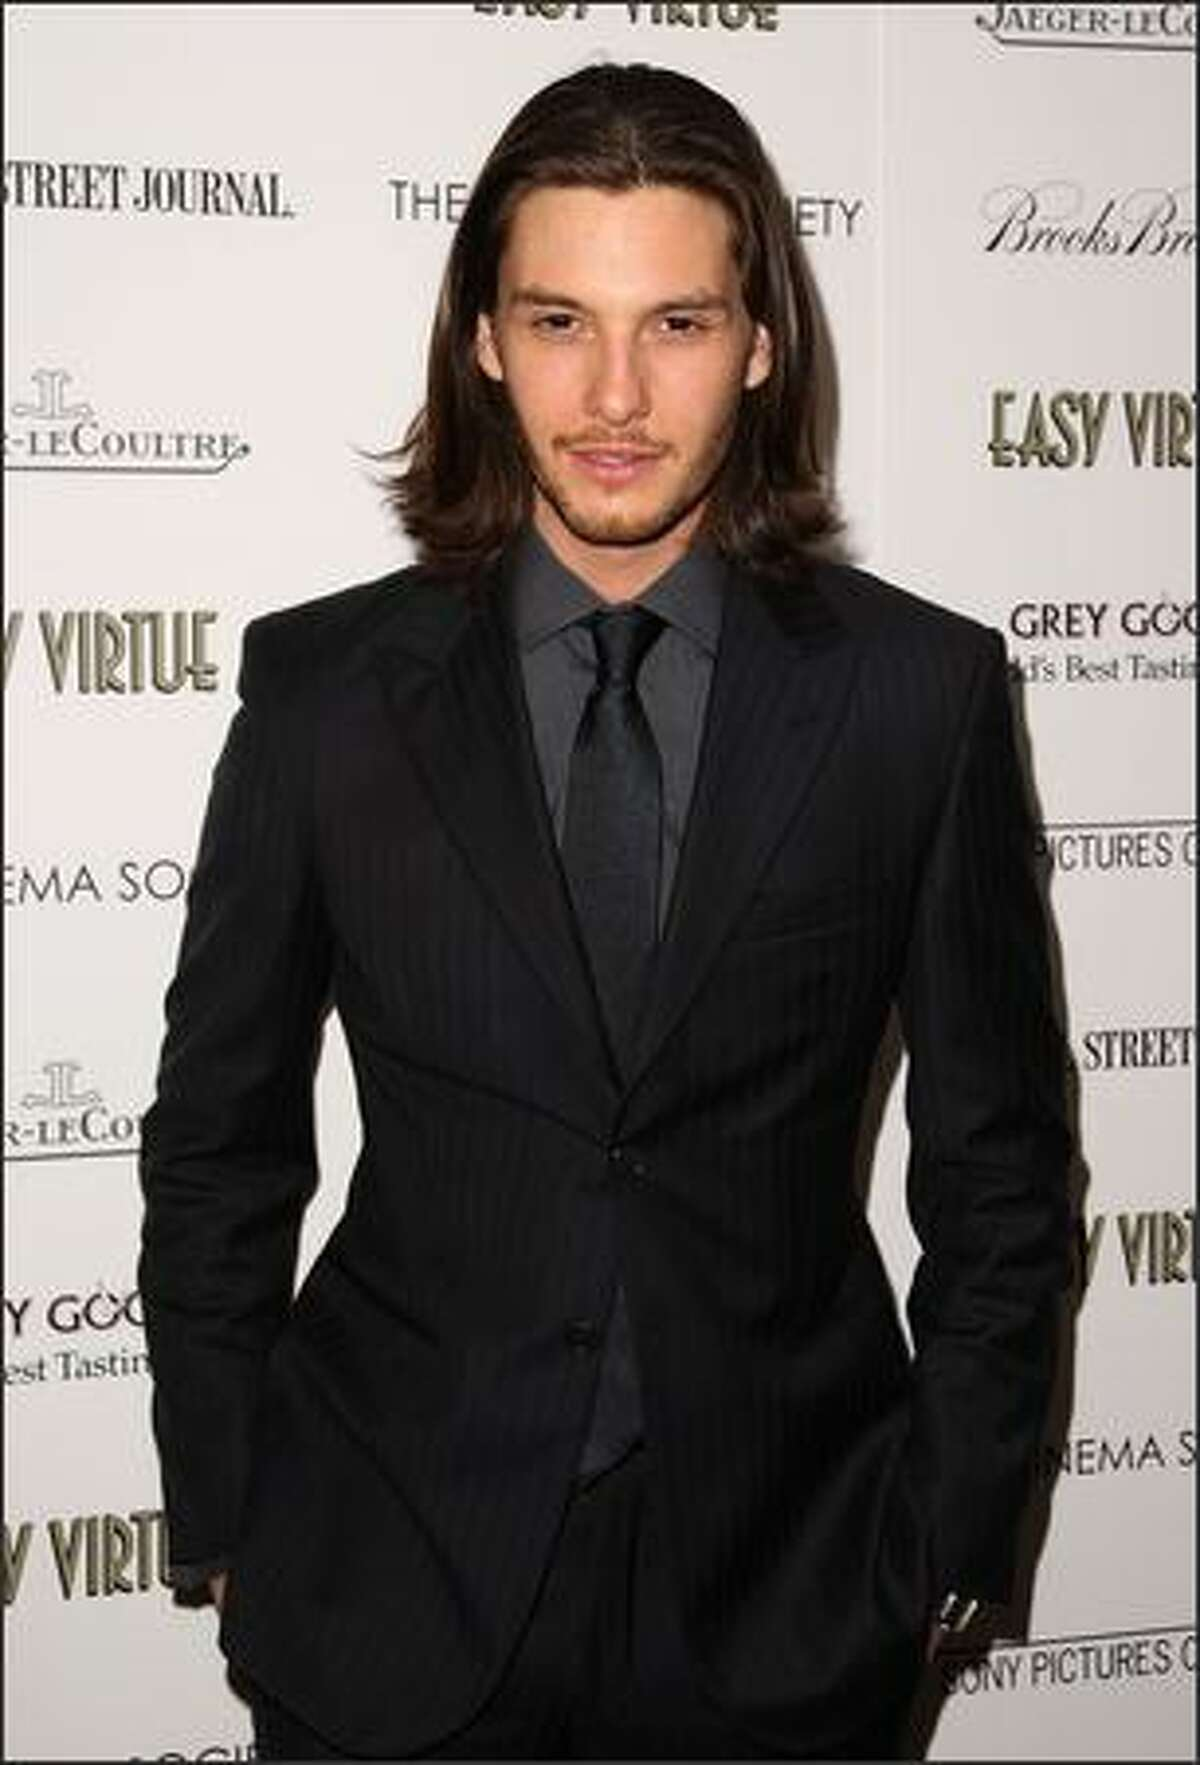 Actor Ben Barnes attends a screening of